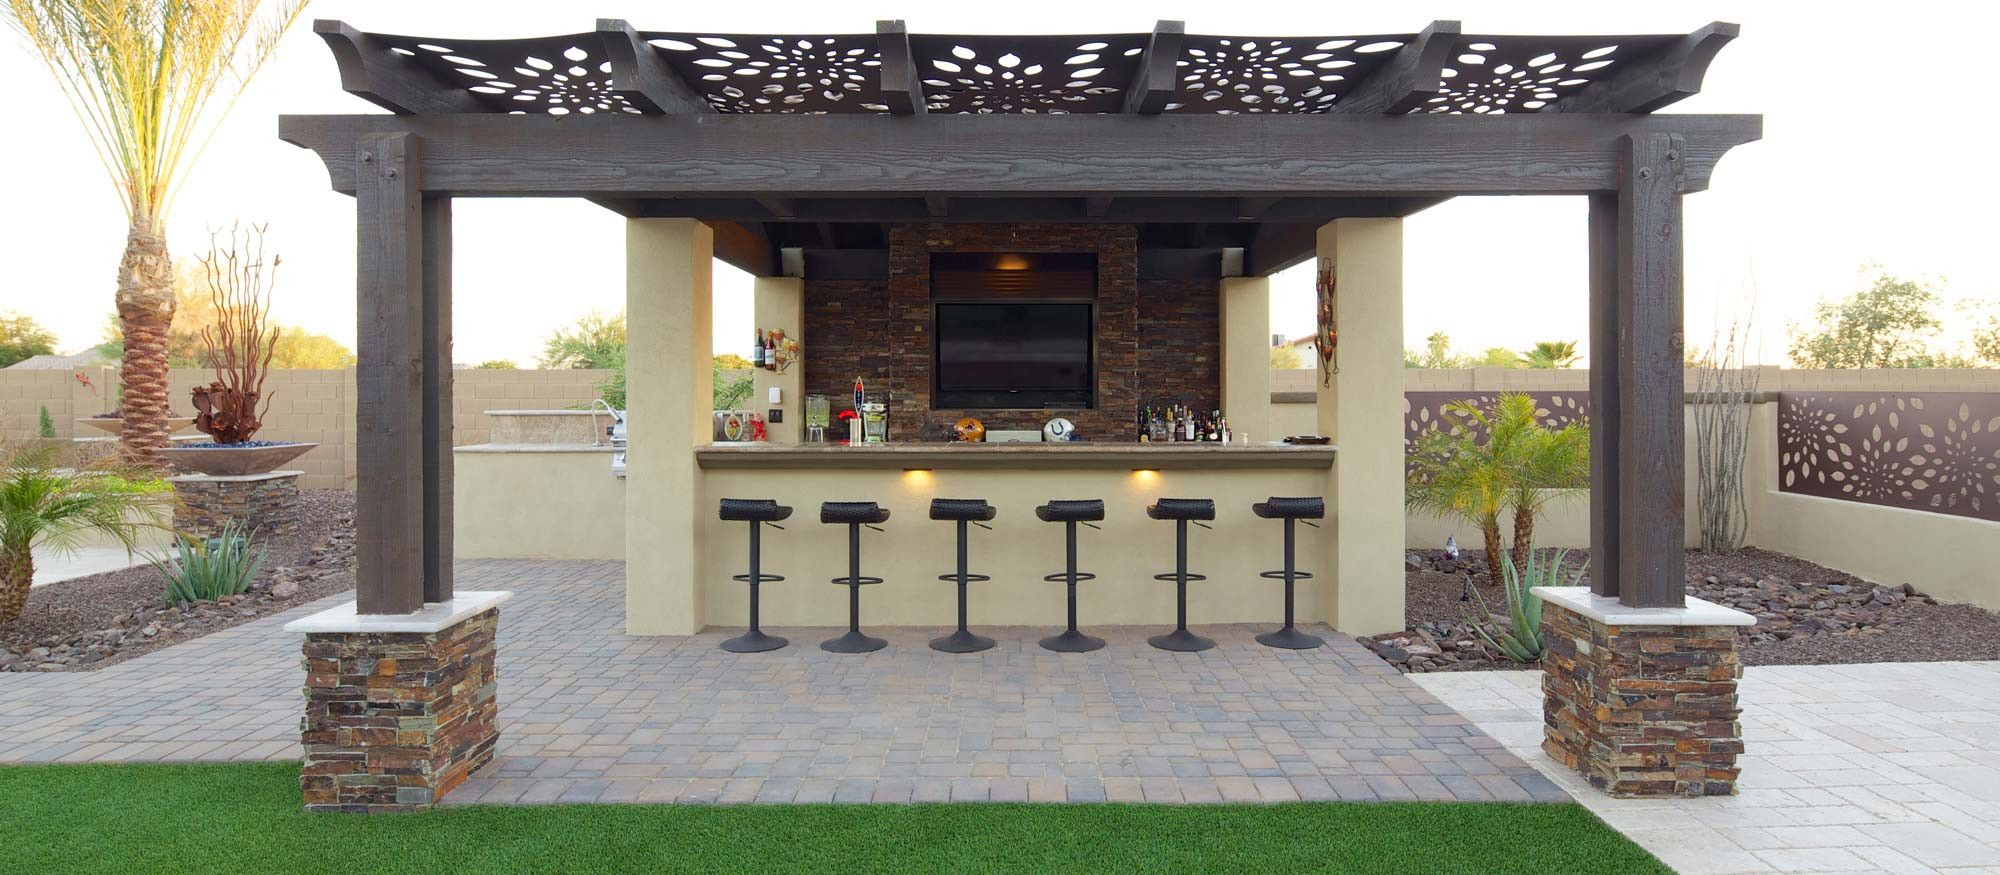 Pergola Outdoor Kitchen BBQ Bar Artificial Grass Link To Pergolas Ramadas Patio Covers